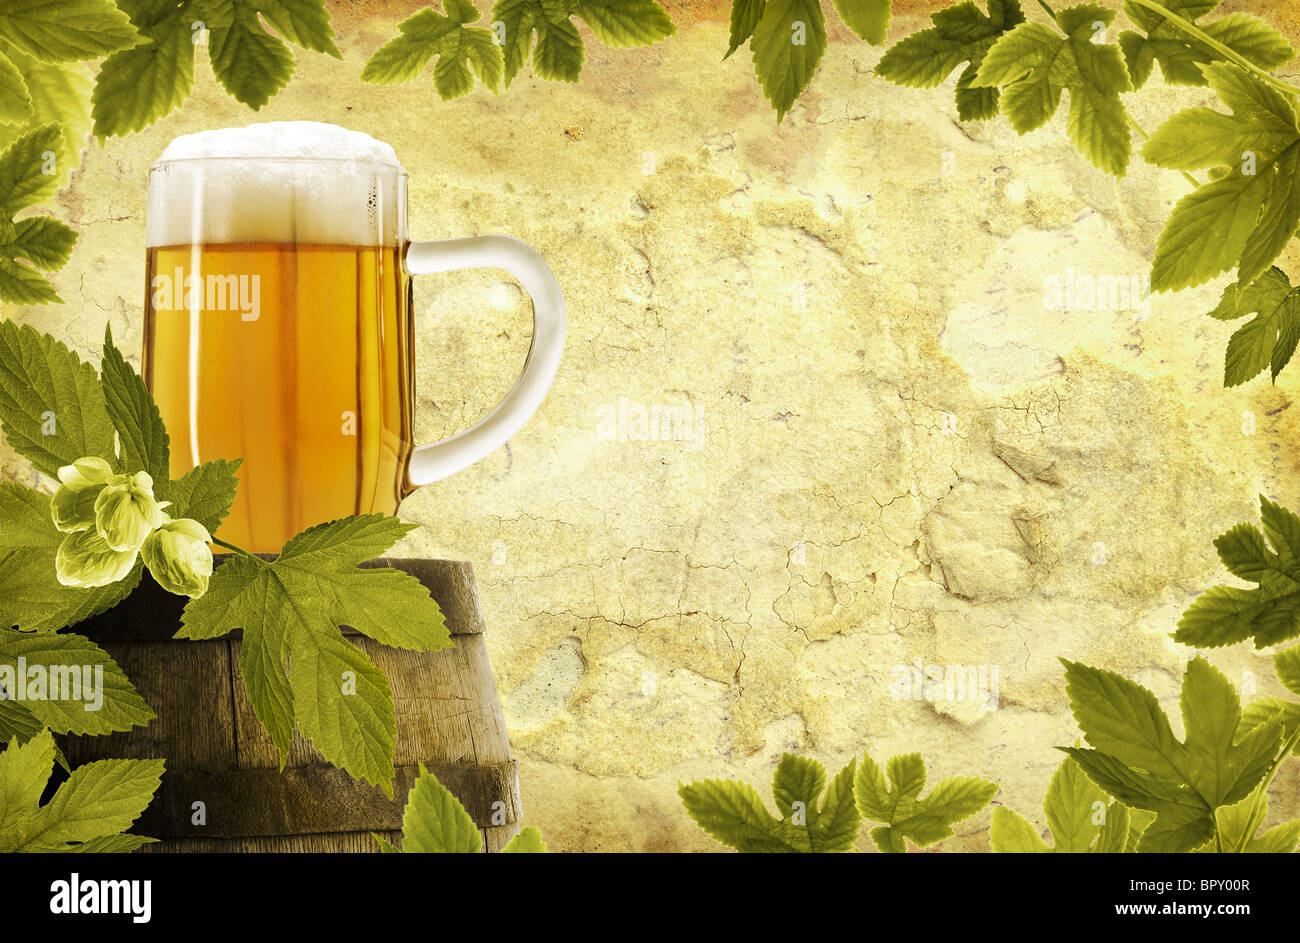 Beer frame in vintage style Stock Photo: 31325527 - Alamy